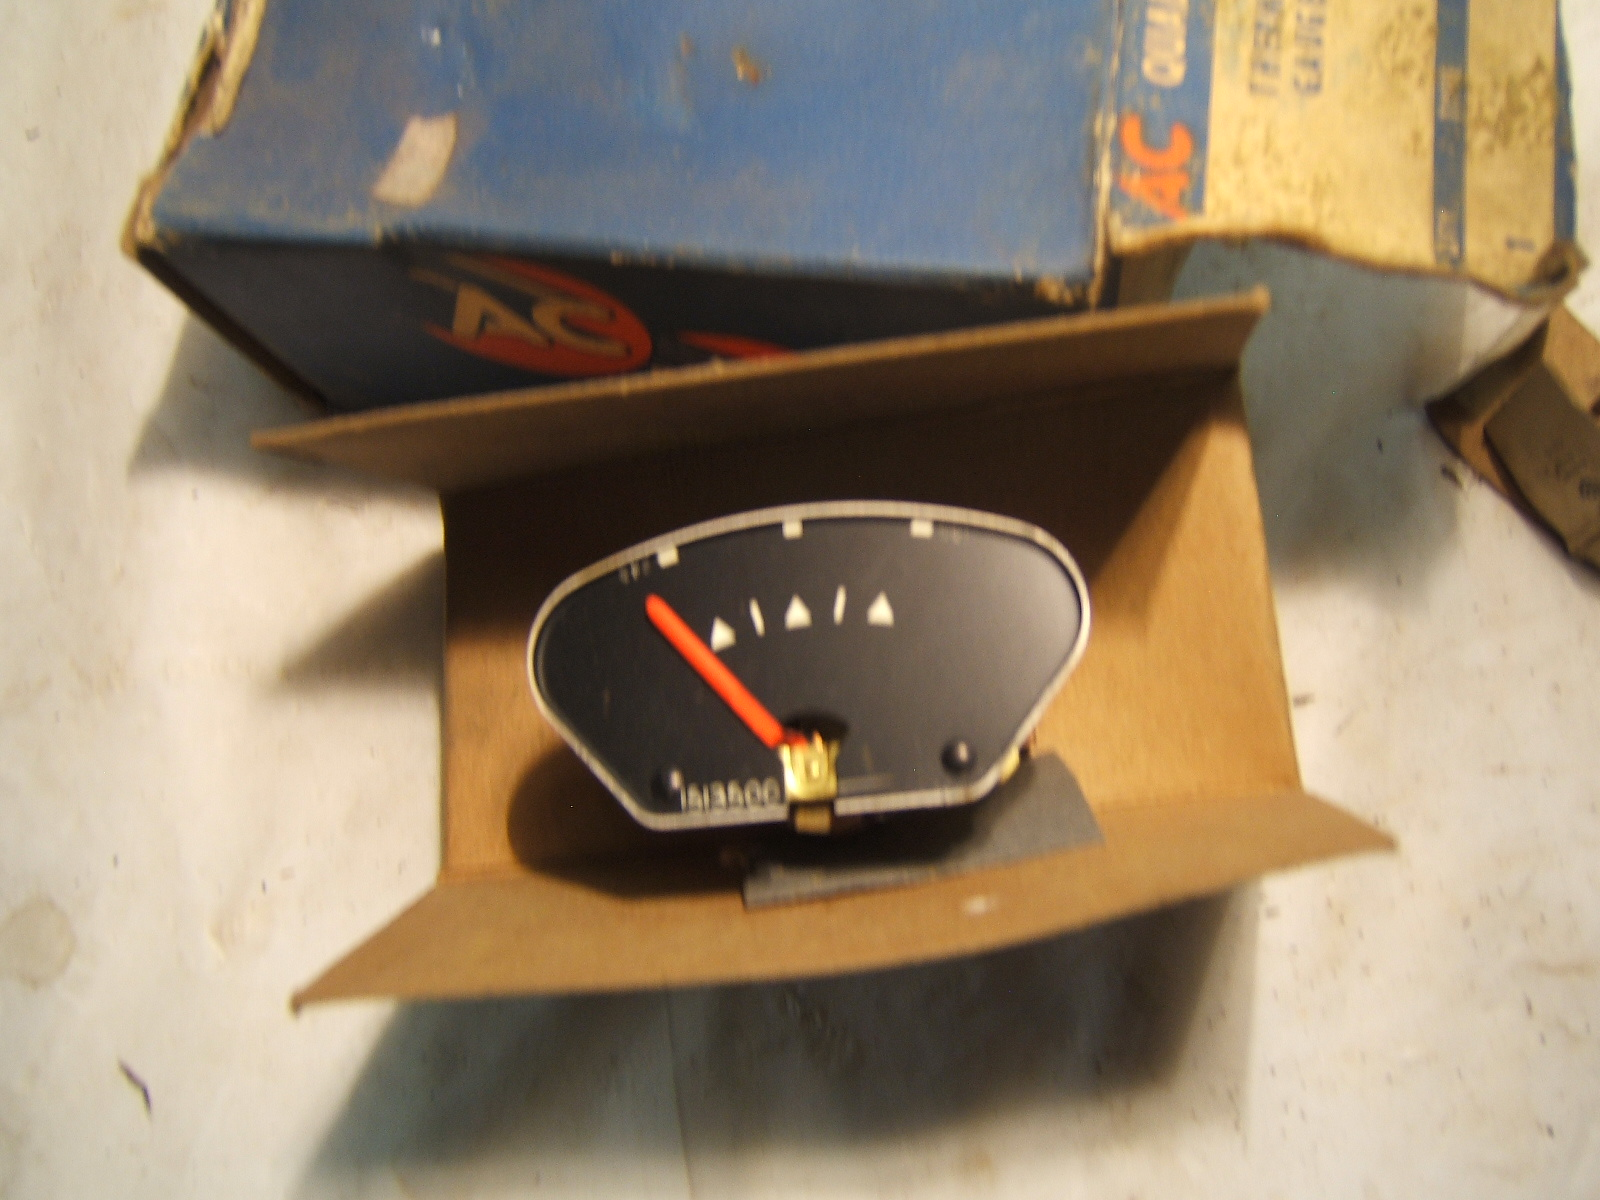 1958 Pontiac Temperrature gauge nos 1513500 (a 1513500)